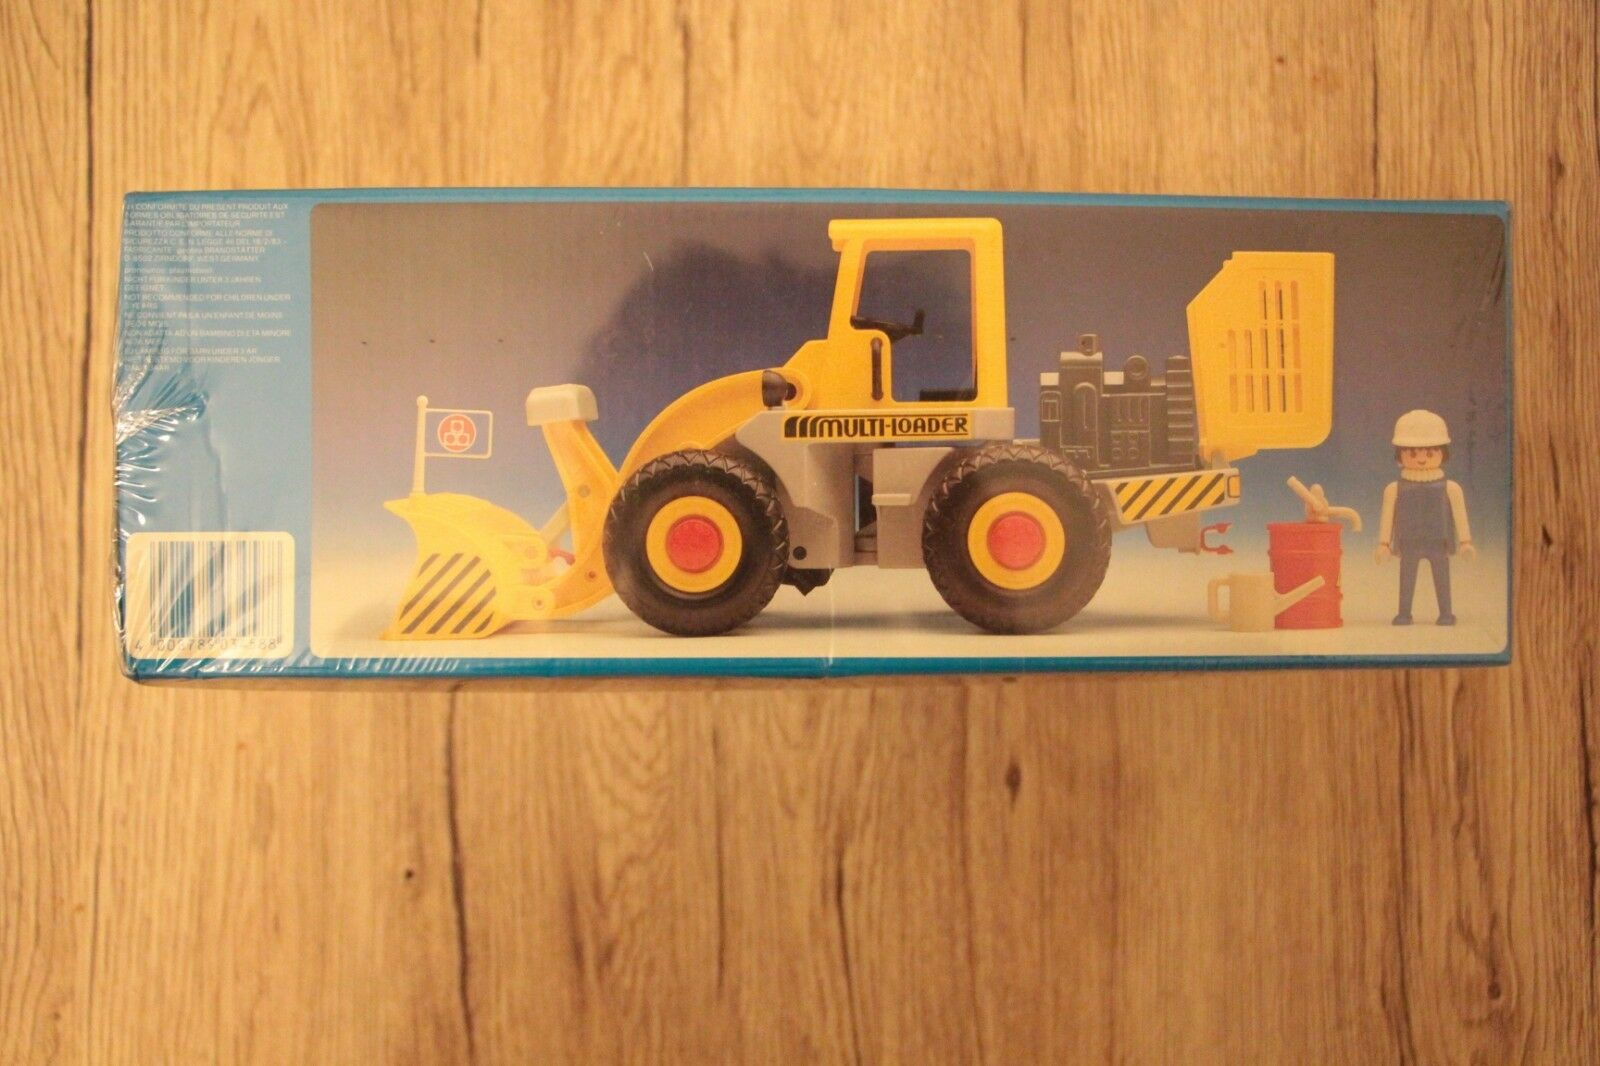 PLAYMOBIL 3458 EARTH MOVER TRUCK MADE IN GERMANY 1988    MIB  OVP  MIB  SPECIAL 3e14d0